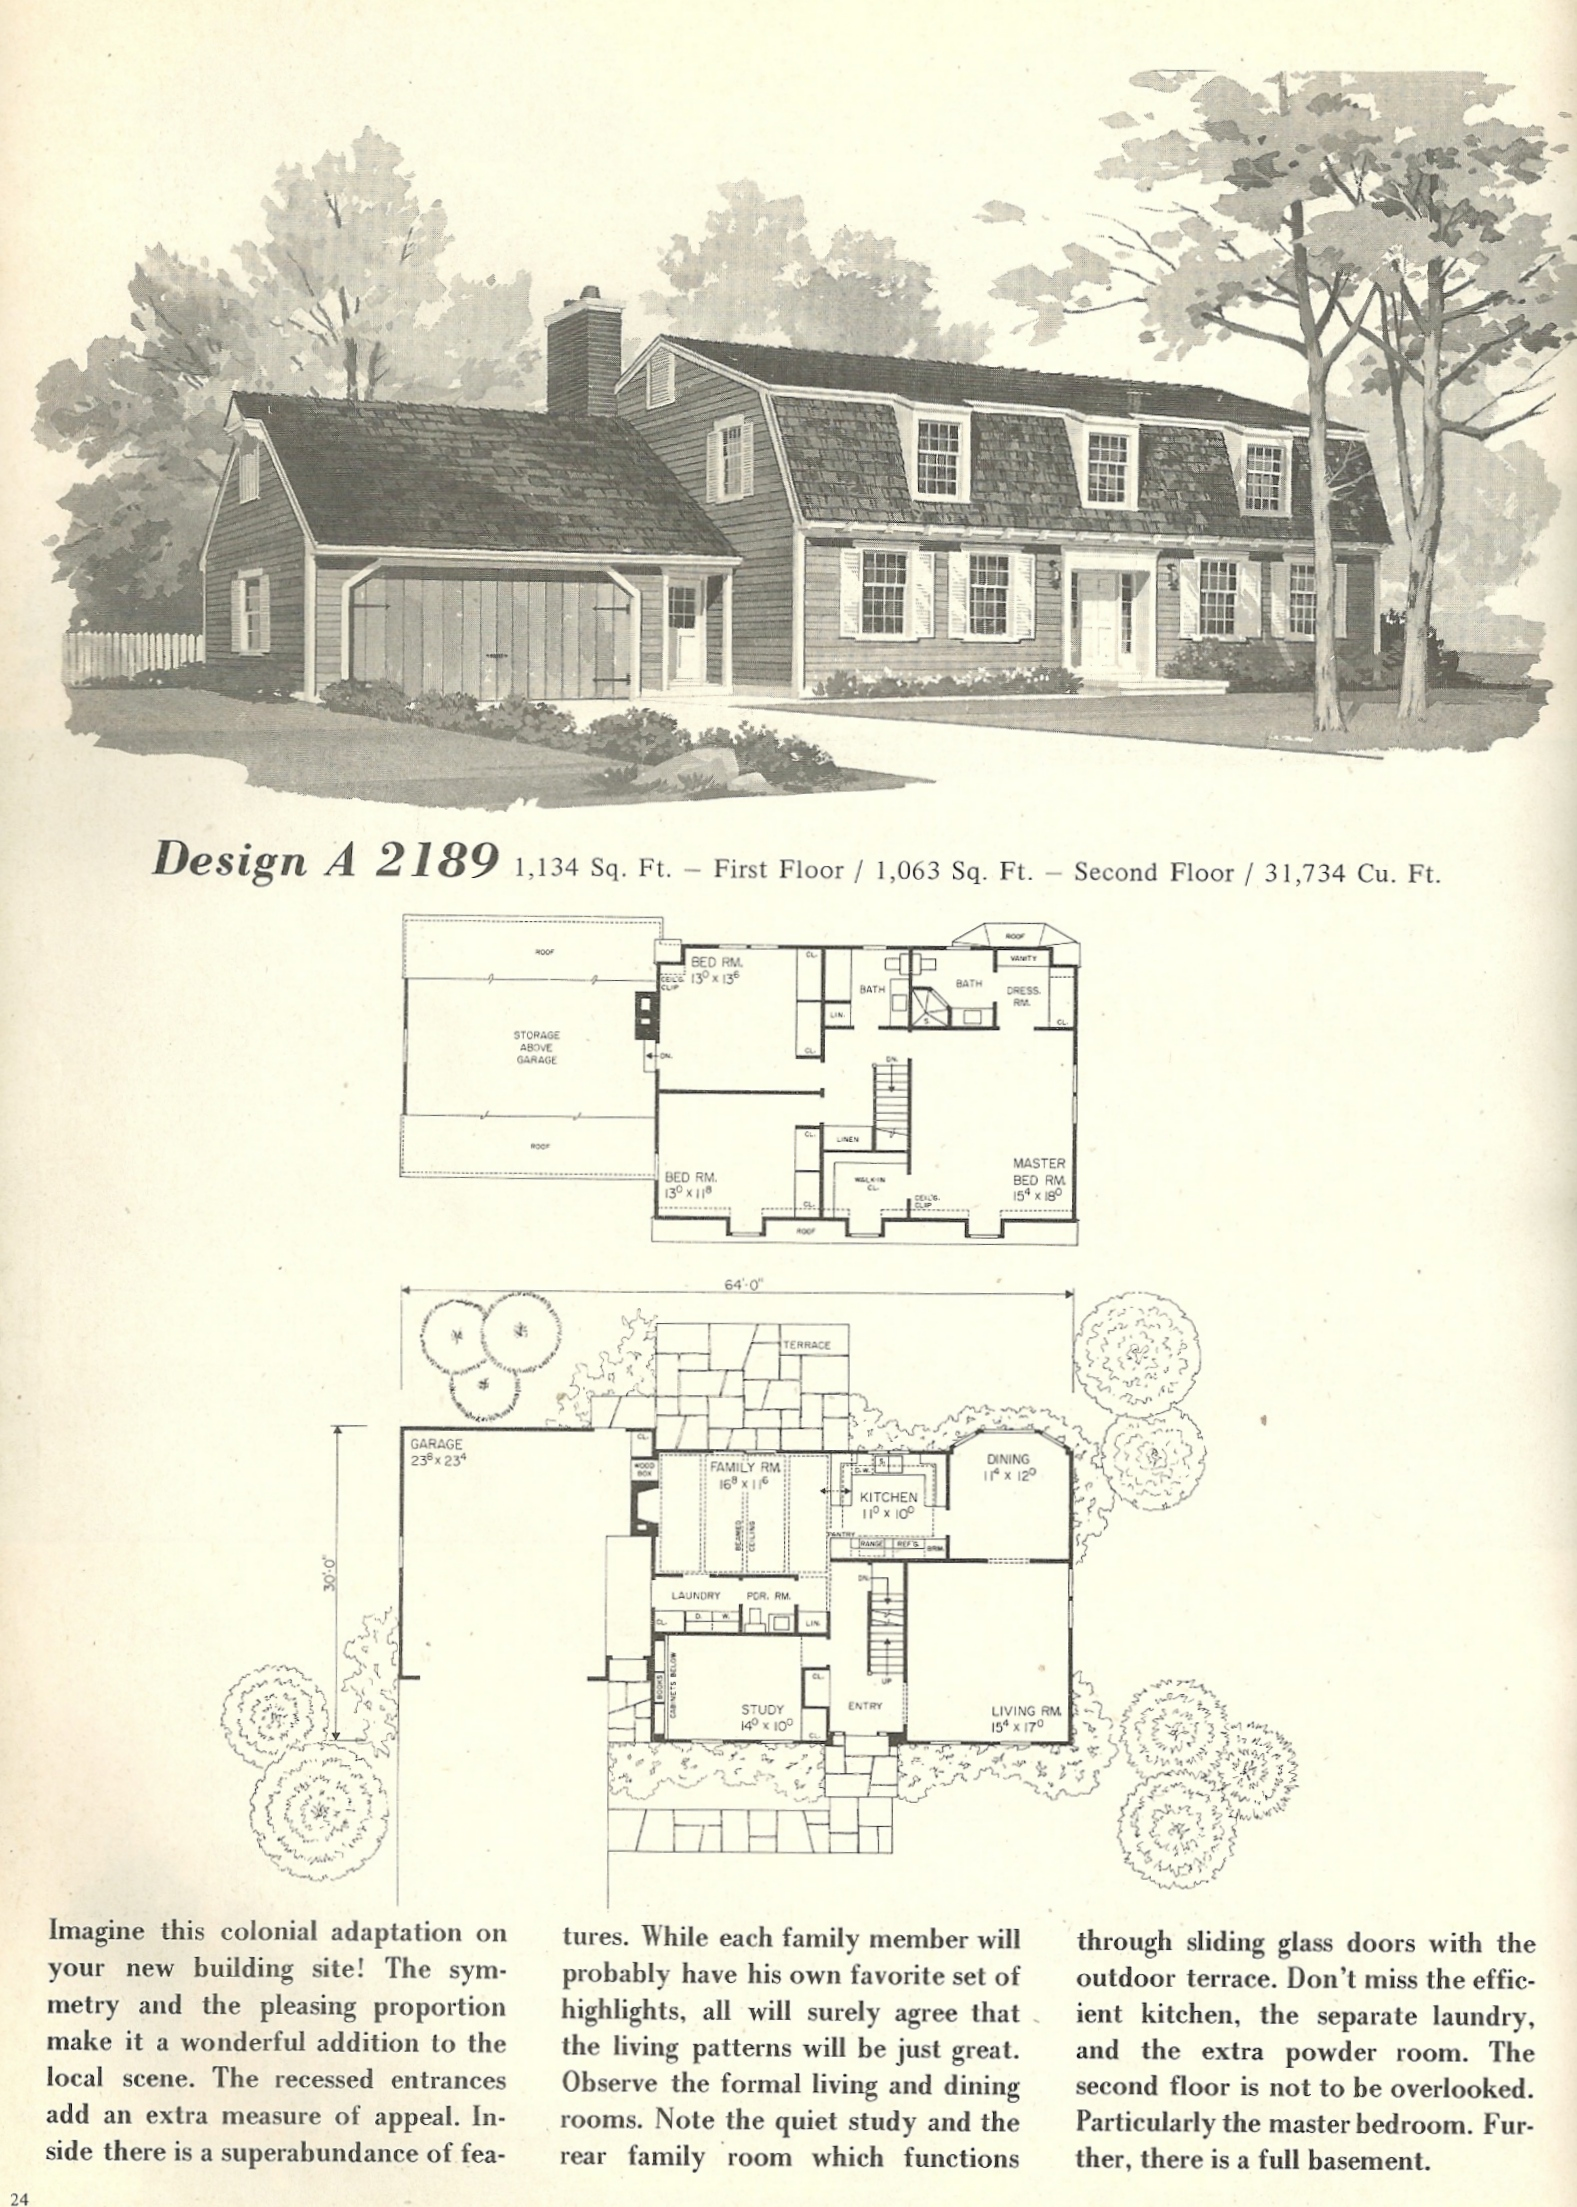 Vintage house plans 2189 antique alter ego for Vintage home plans